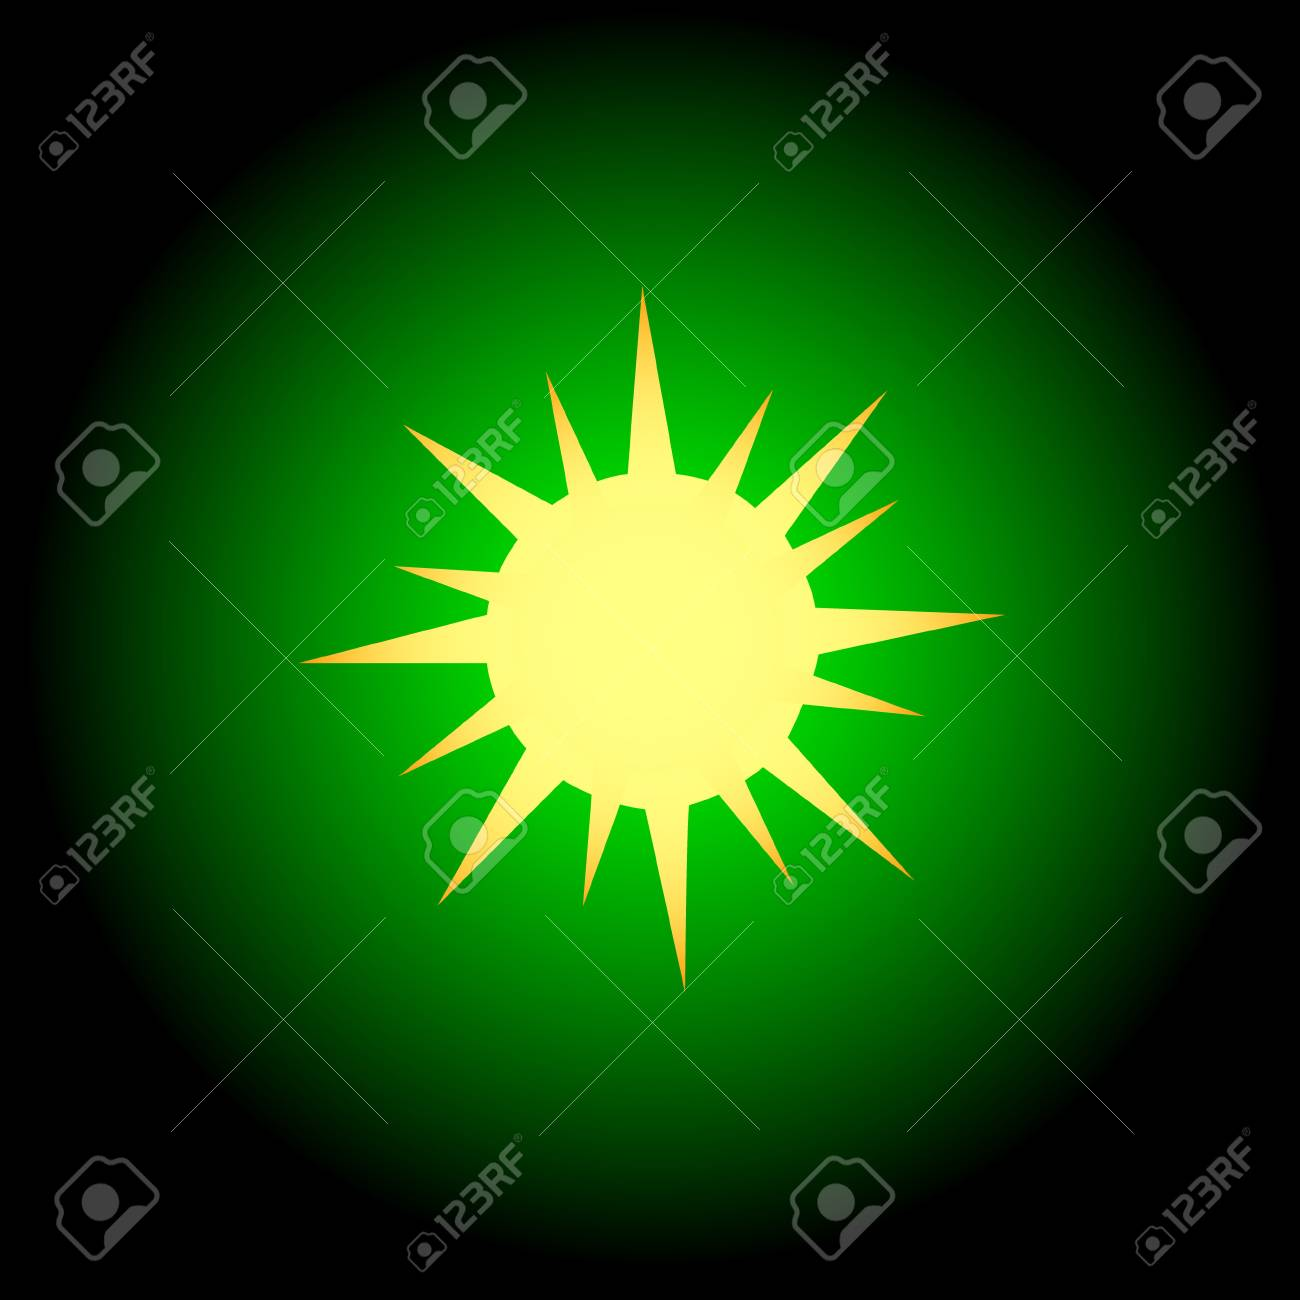 Sun icon located on a green background Stock Vector - 15735741